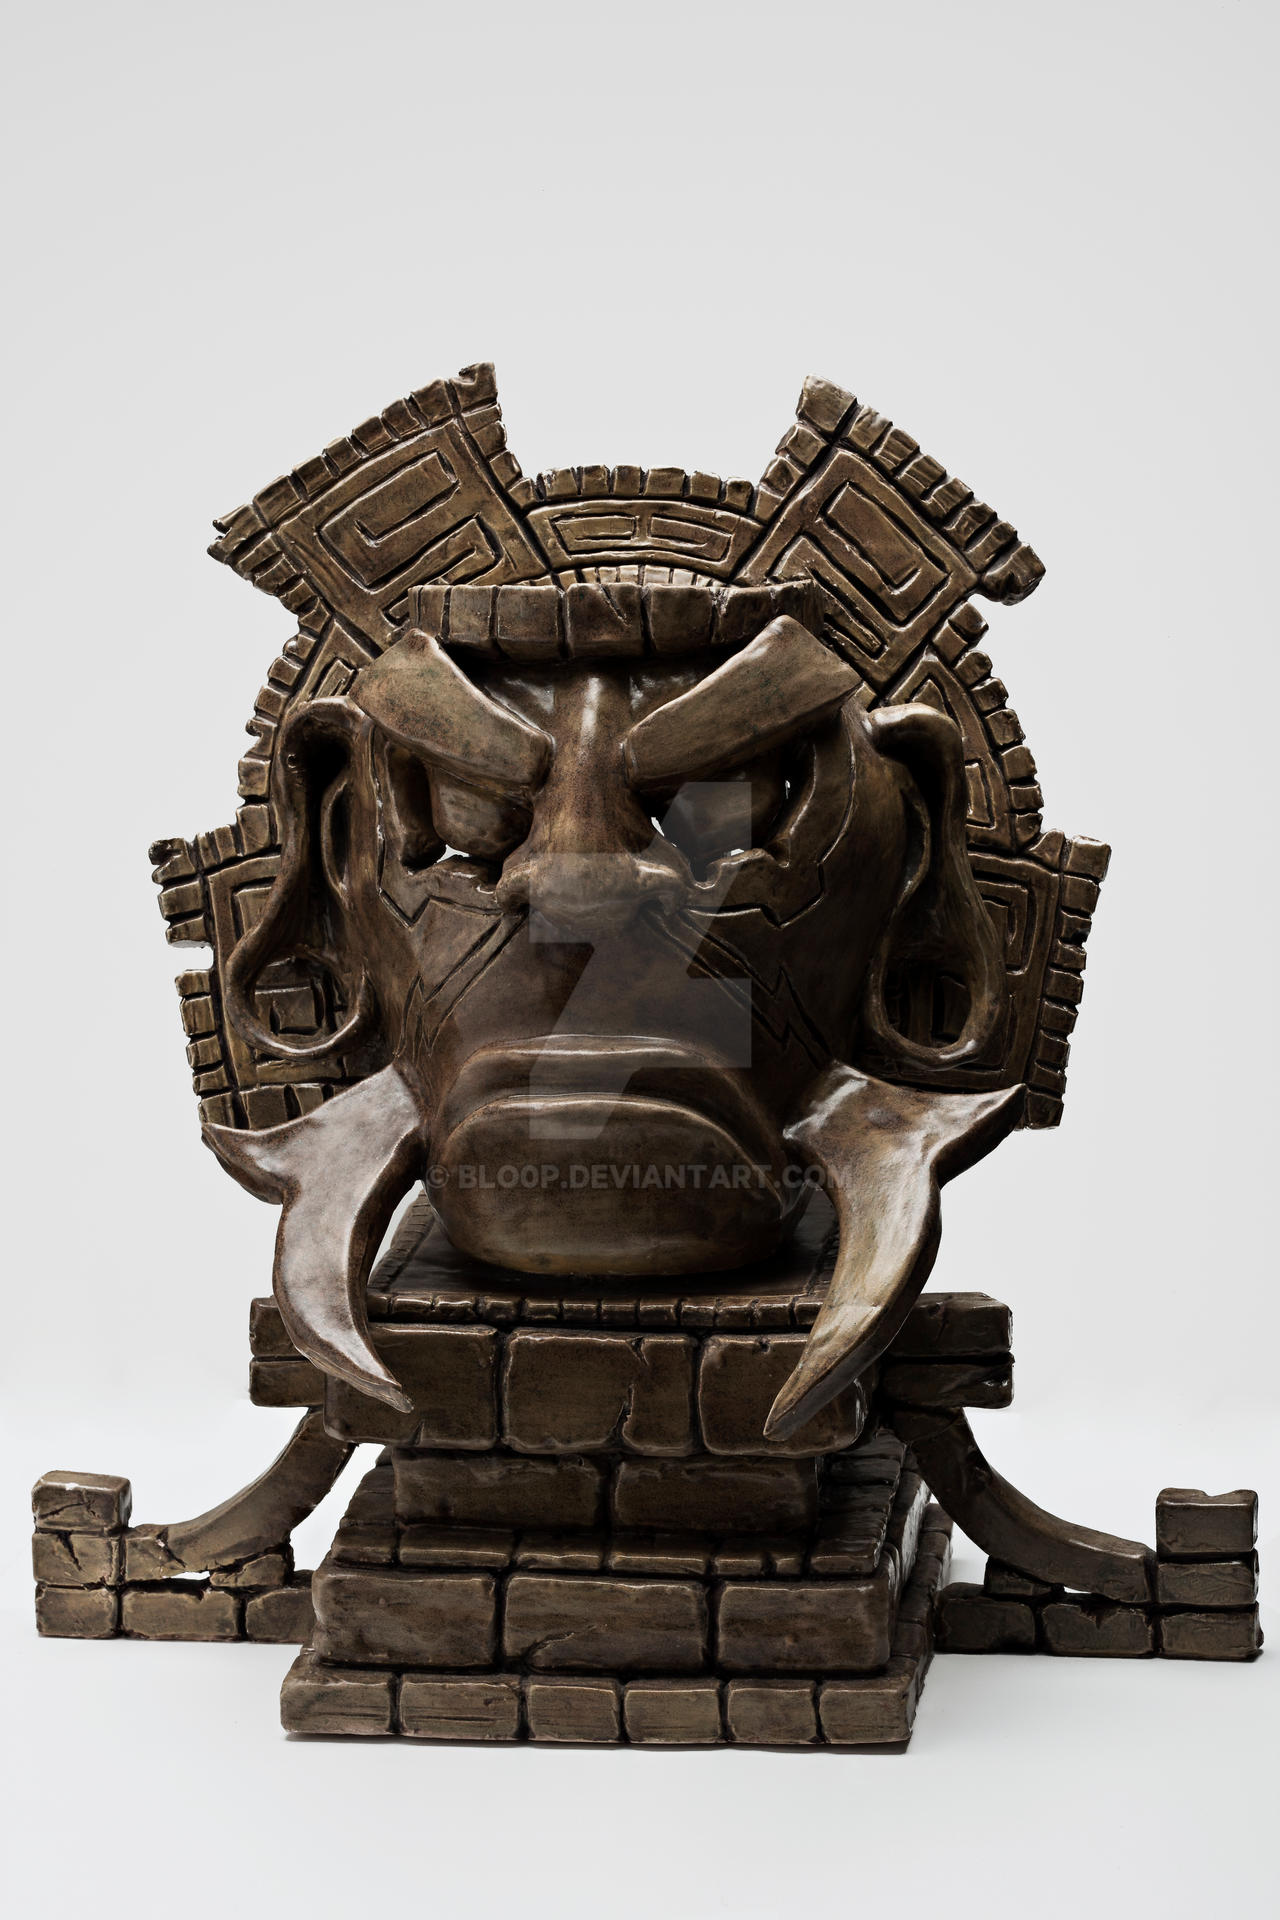 Olmec - Full View by blo0p